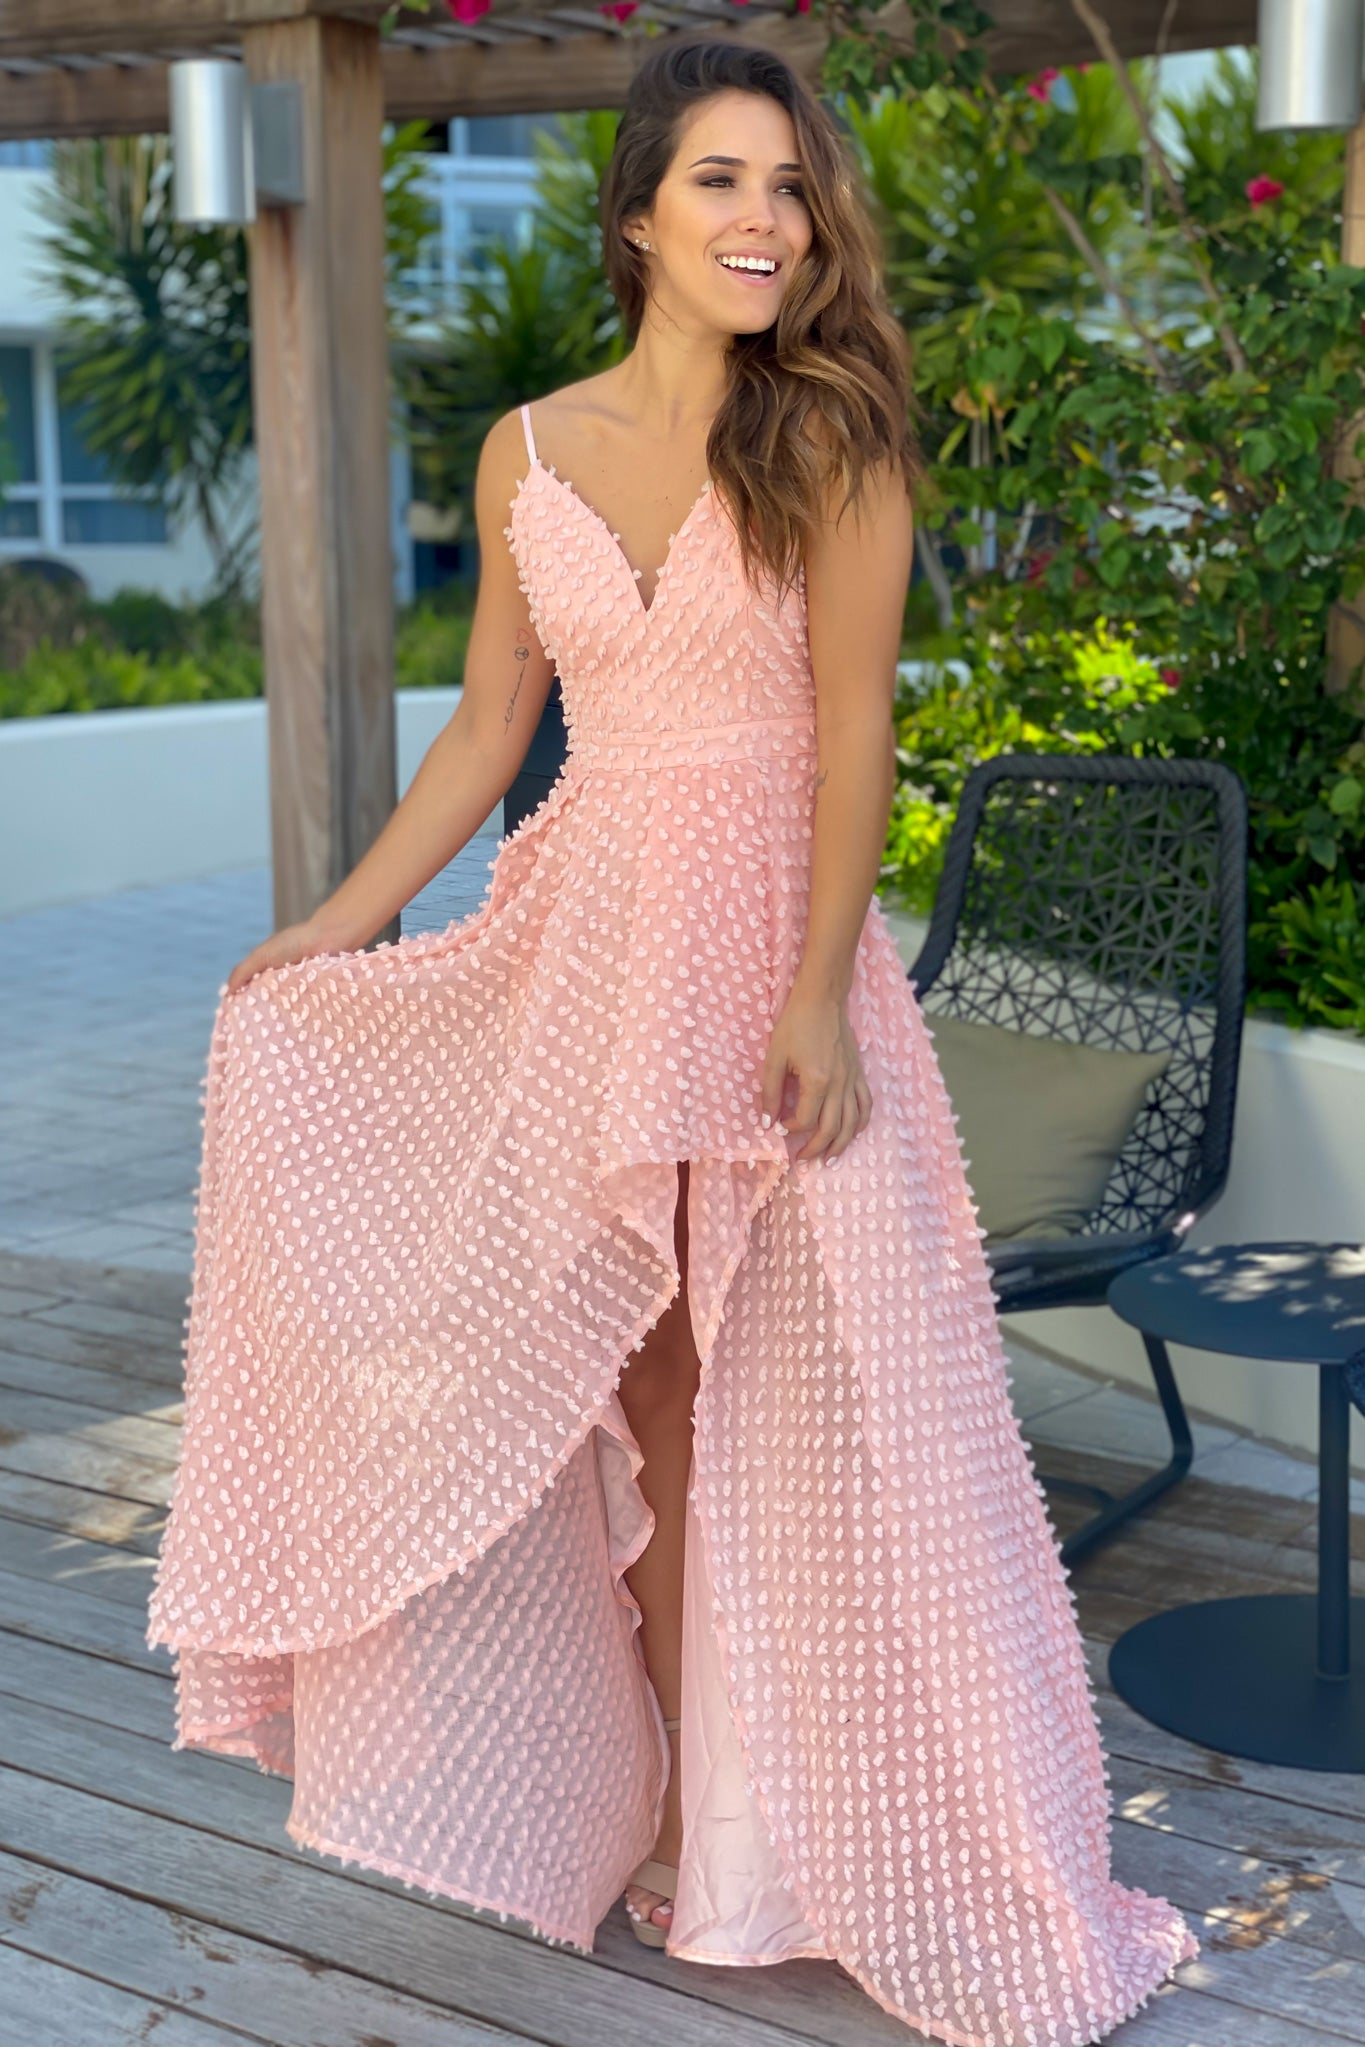 Pink High Low Dress with Embellishments